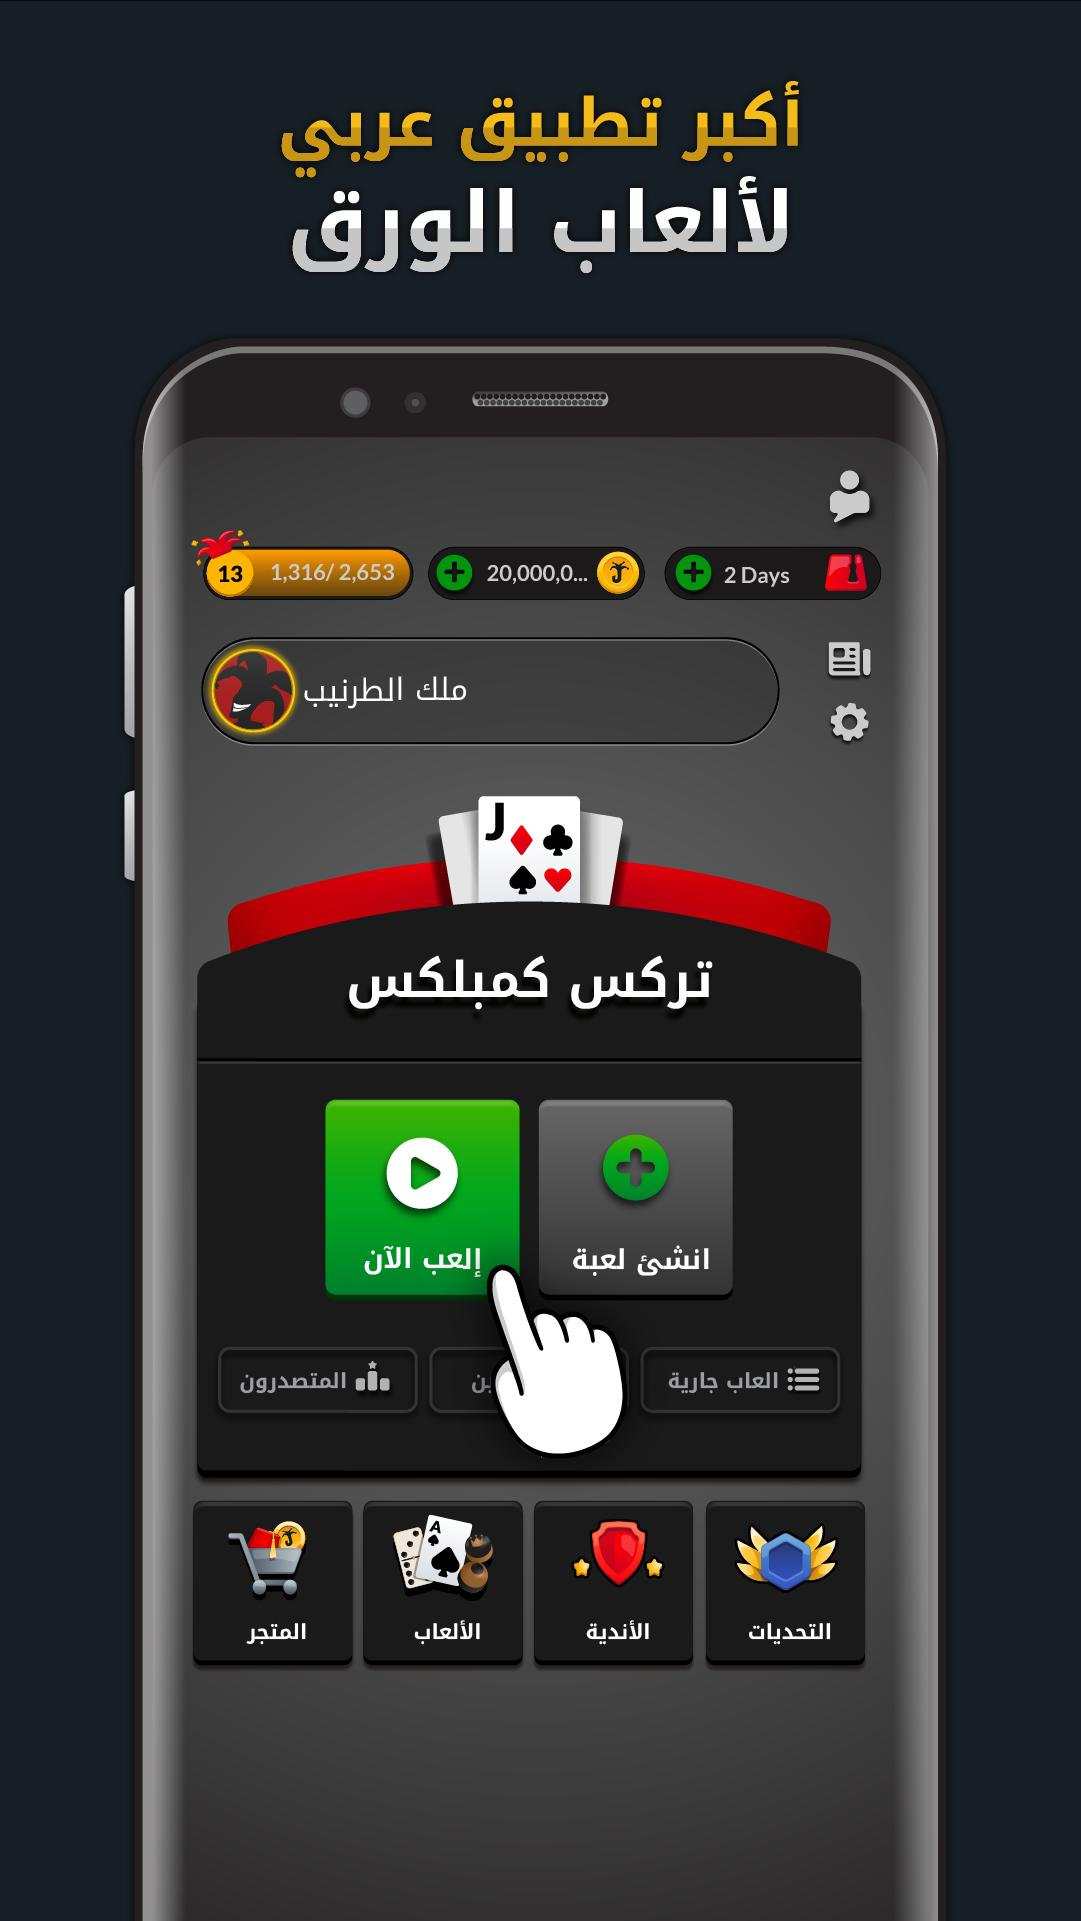 safestrap 3.75 apk download